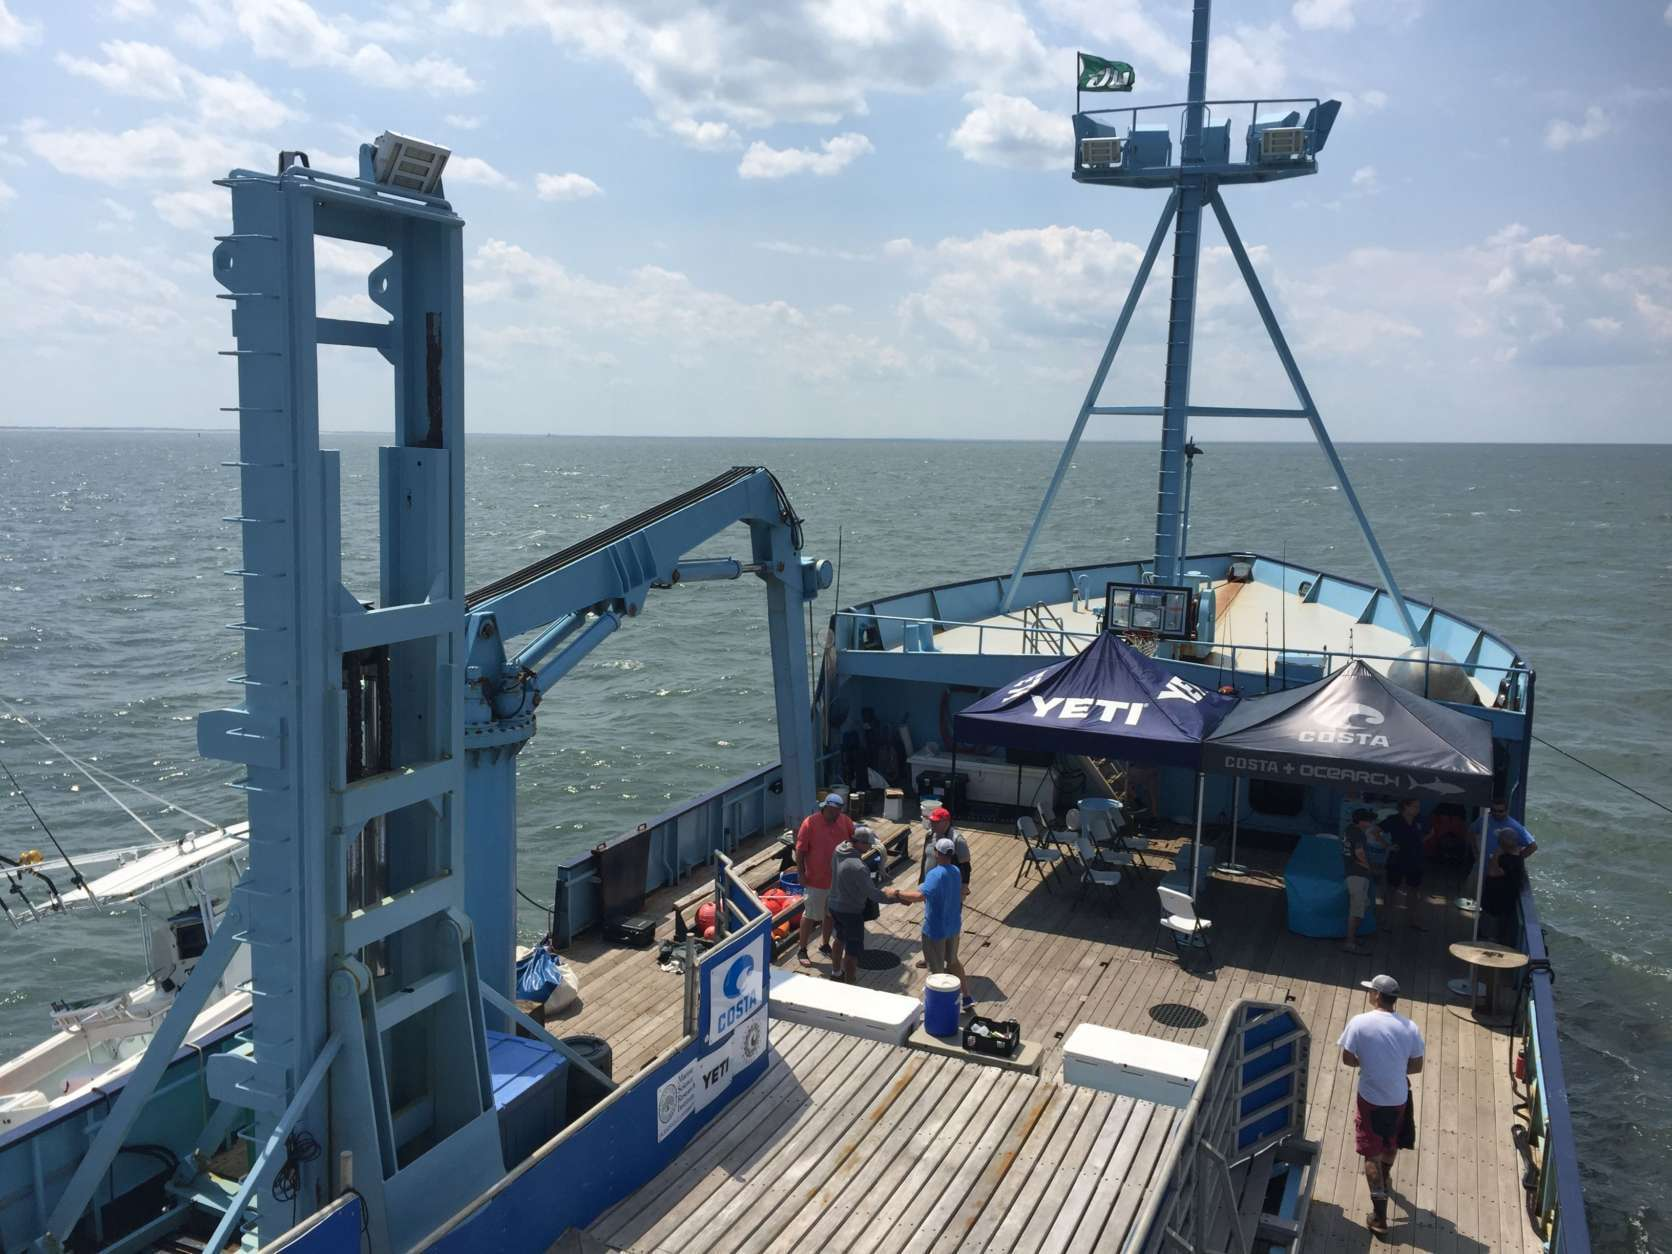 The OCEARCH is a 126-foot research vessel that just wrapped up its 29th shark tagging expedition along the mid-Atlantic coast. (WTOP/Michelle Basch)